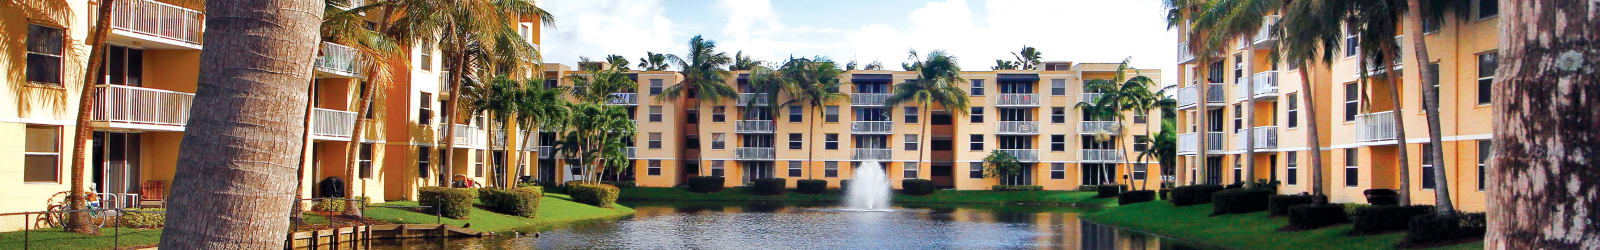 1 & 2 bedrooms offered at apartments in Dania Beach